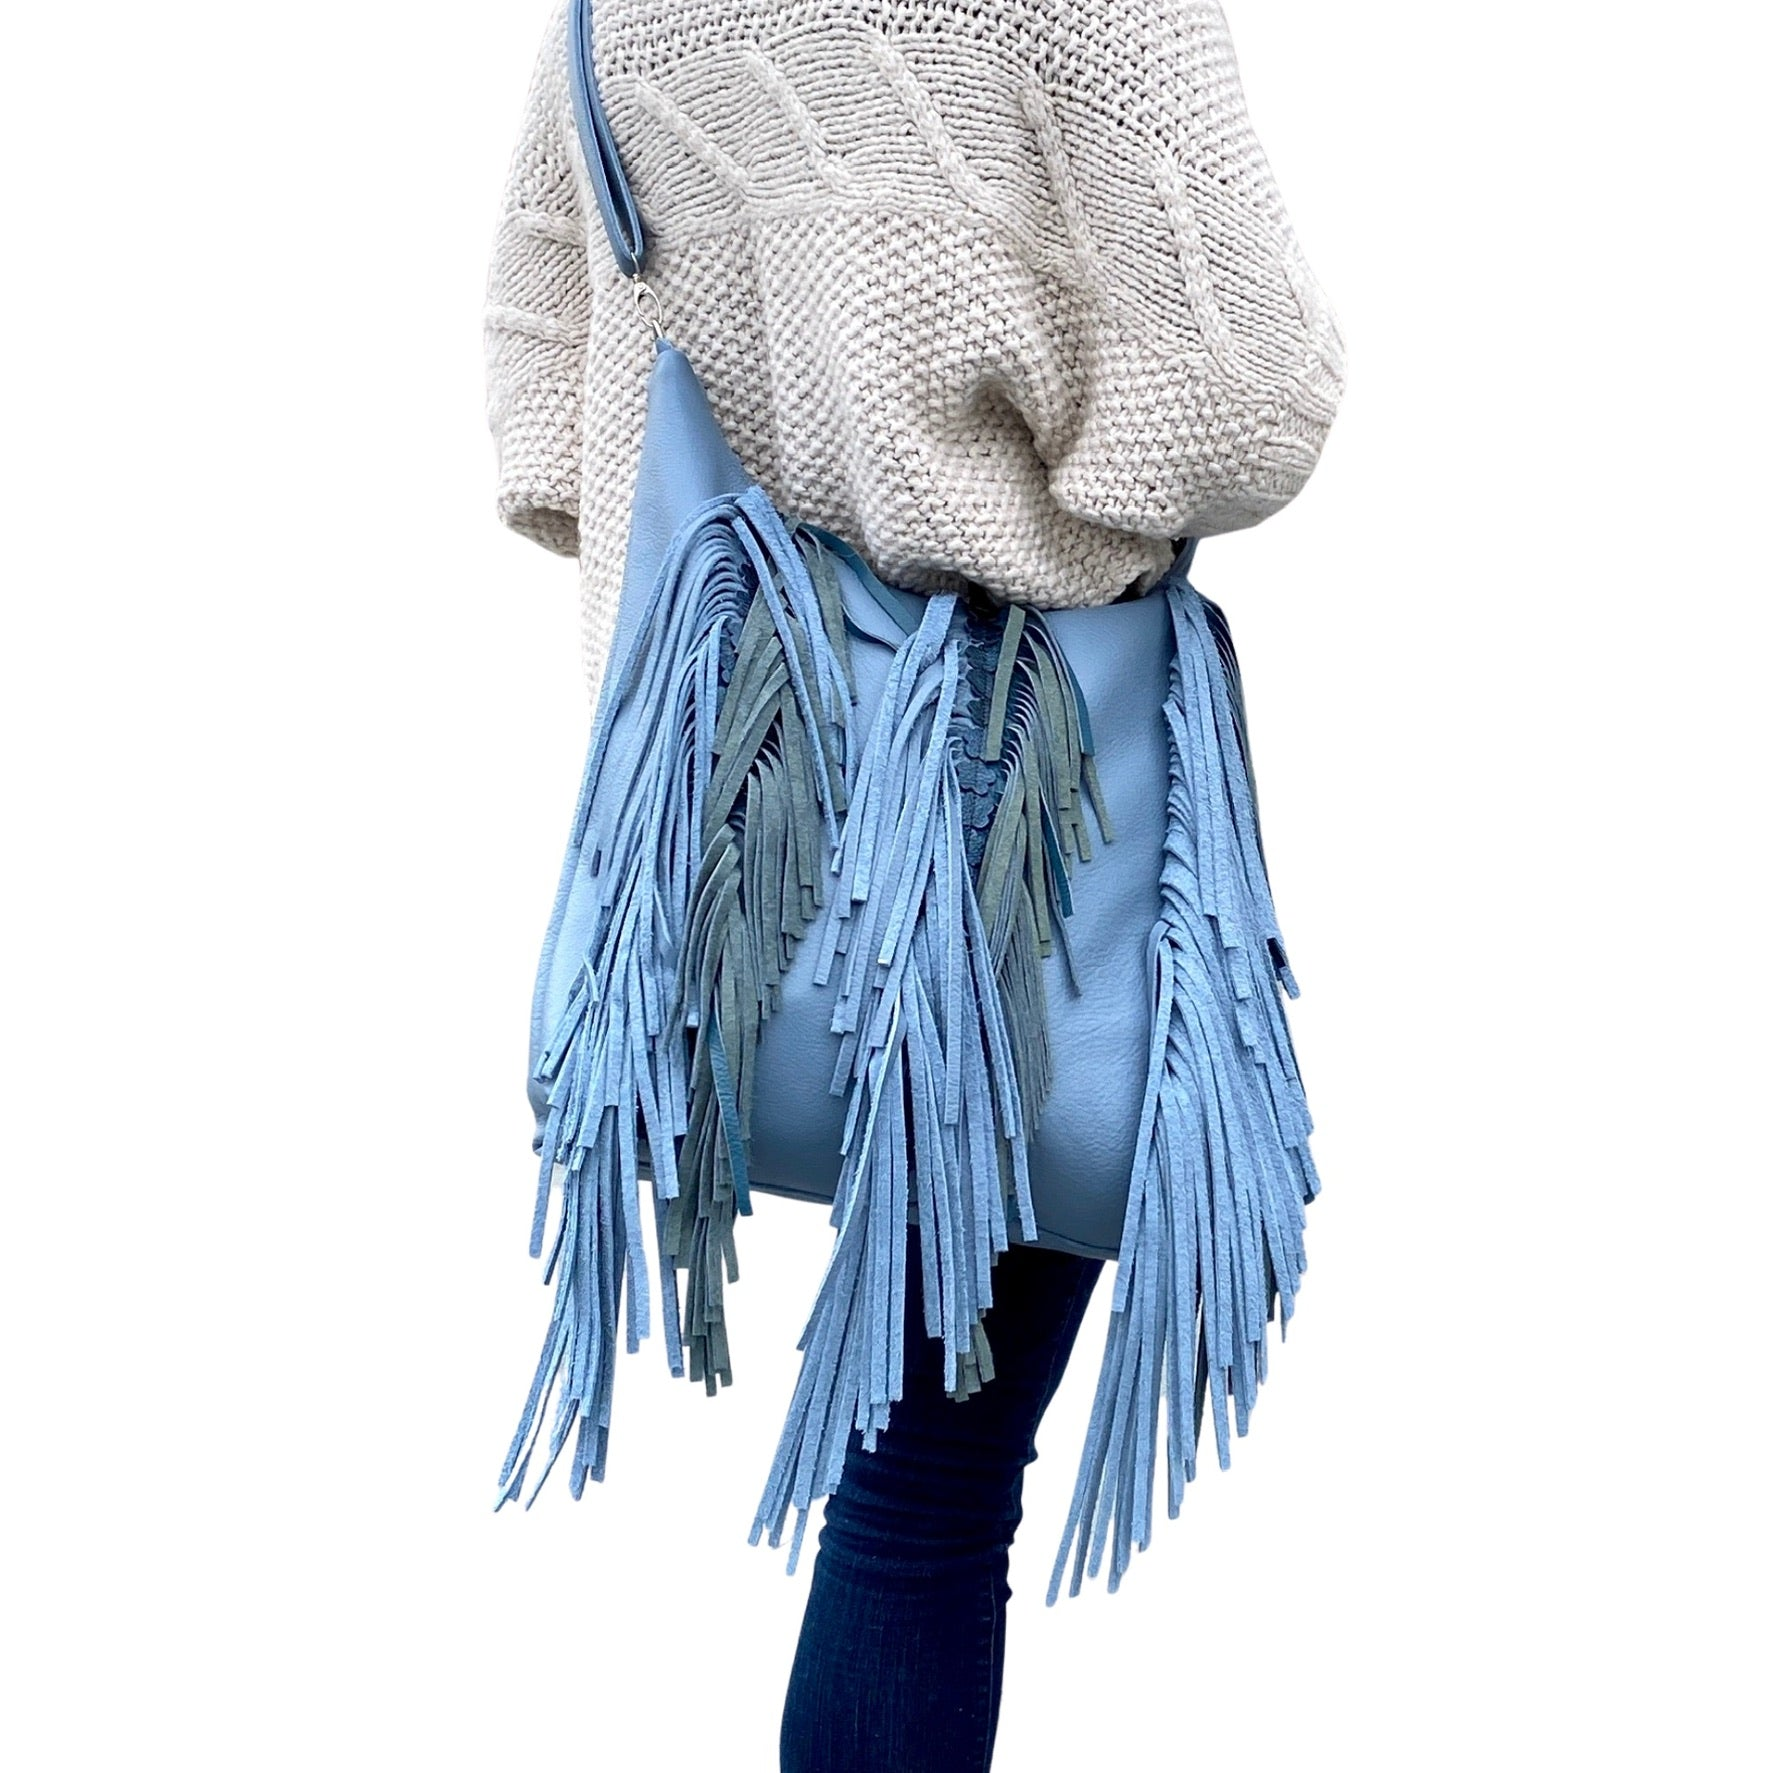 Blue crossbody leather bag with fringe